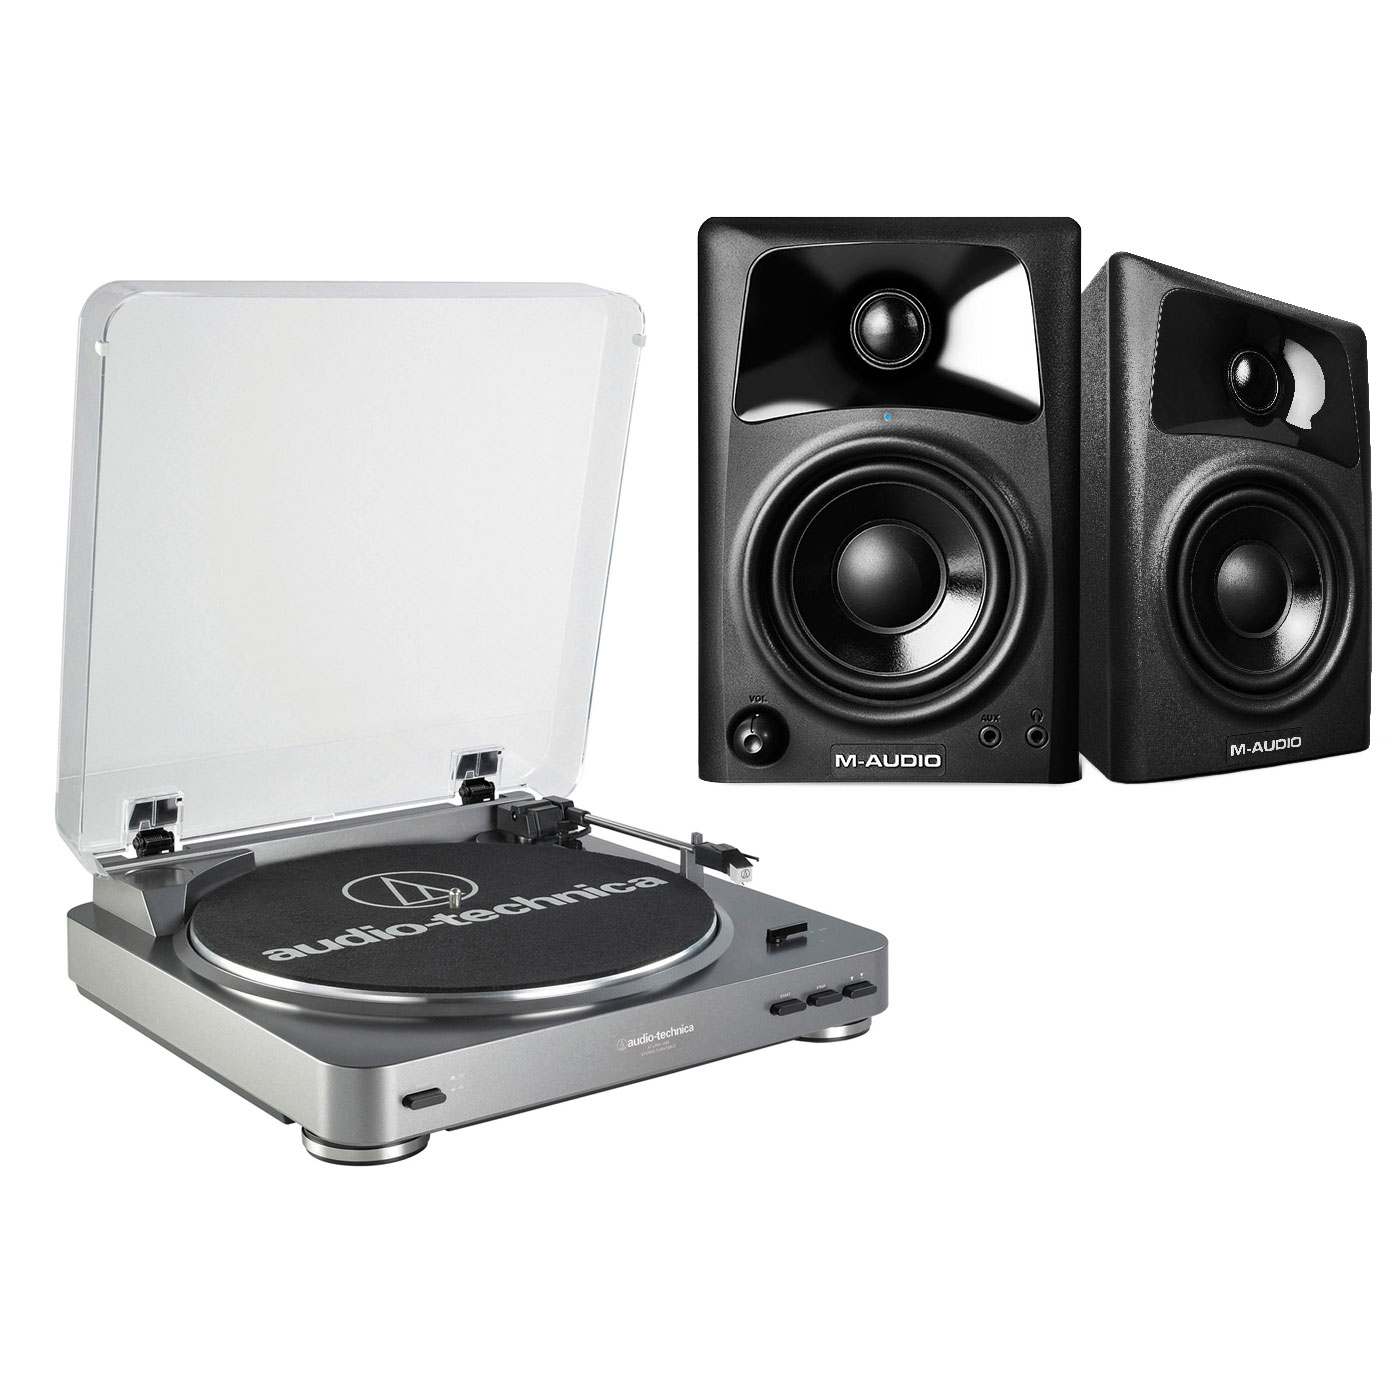 Platine vinyle Audio-Technica AT-LP60USB + M-Audio AV 32 Platine vinyle à 2 vitesses (33-45 trs/min) + Enceintes de monitoring actives 2.0